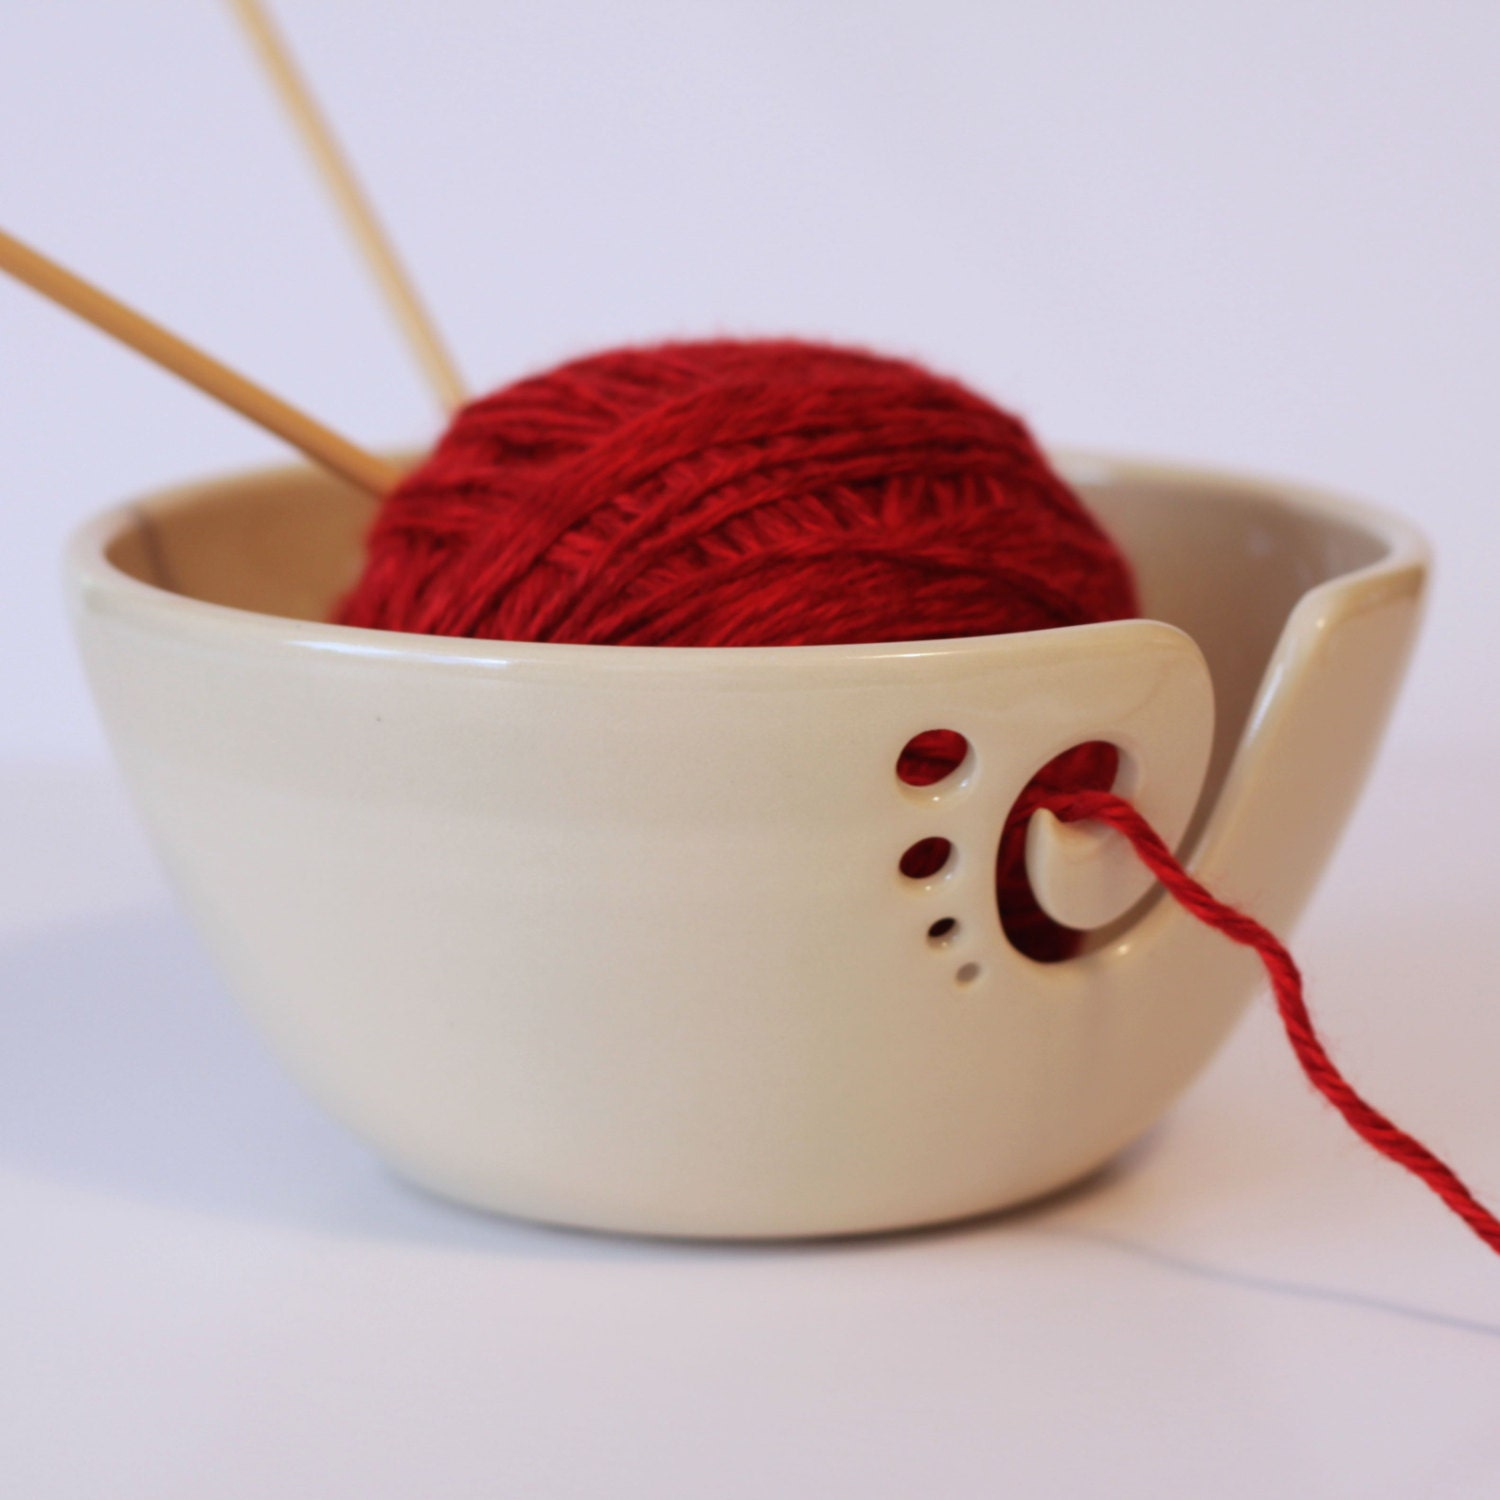 Crochet Yarn Bowl : White Ceramic Yarn Bowl Knitting Bowl Crochet by andersenpottery